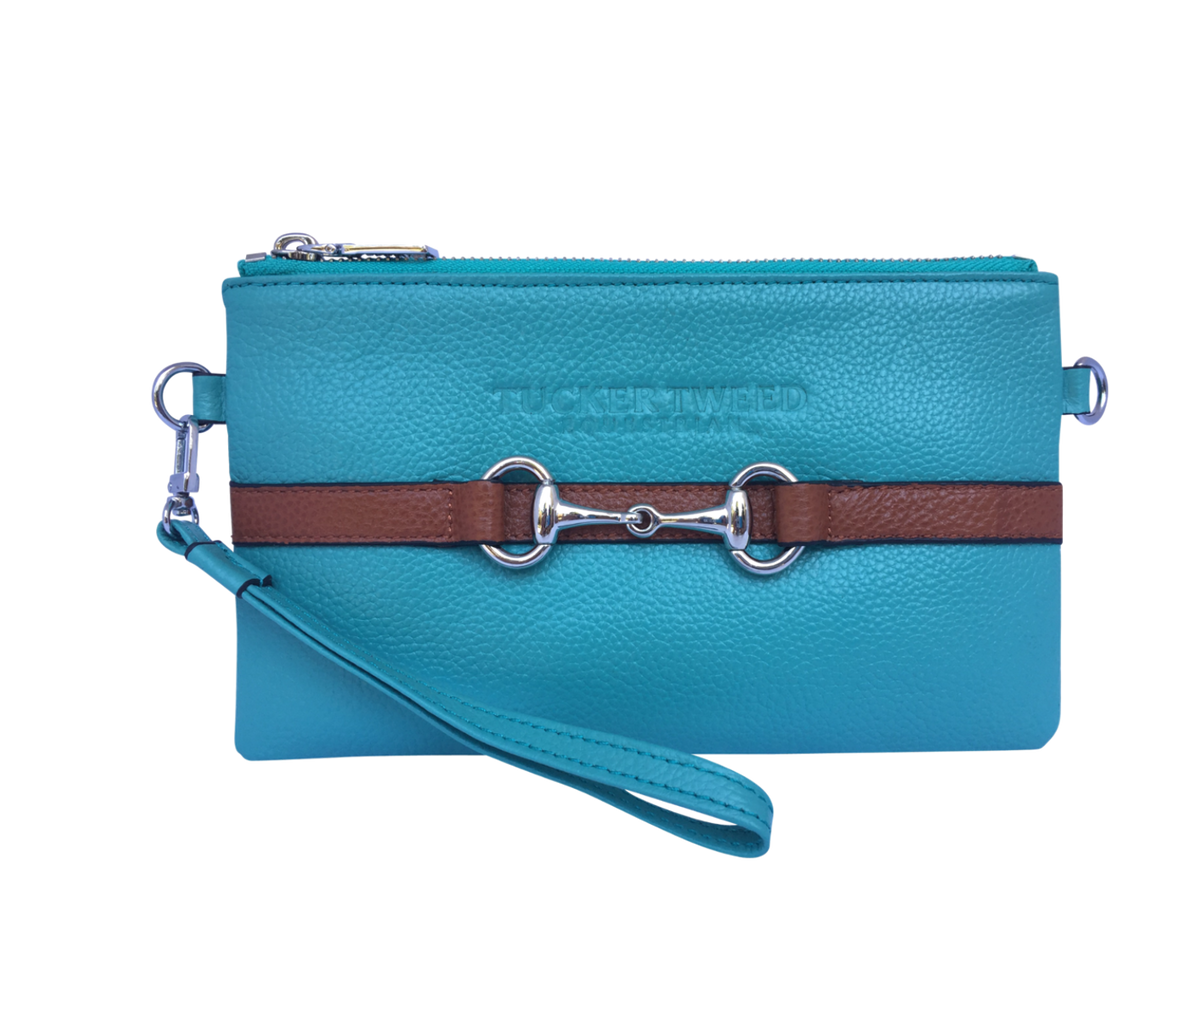 Tucker Tweed Leather Handbags Turquoise/Chestnut The Wellington Wristlet